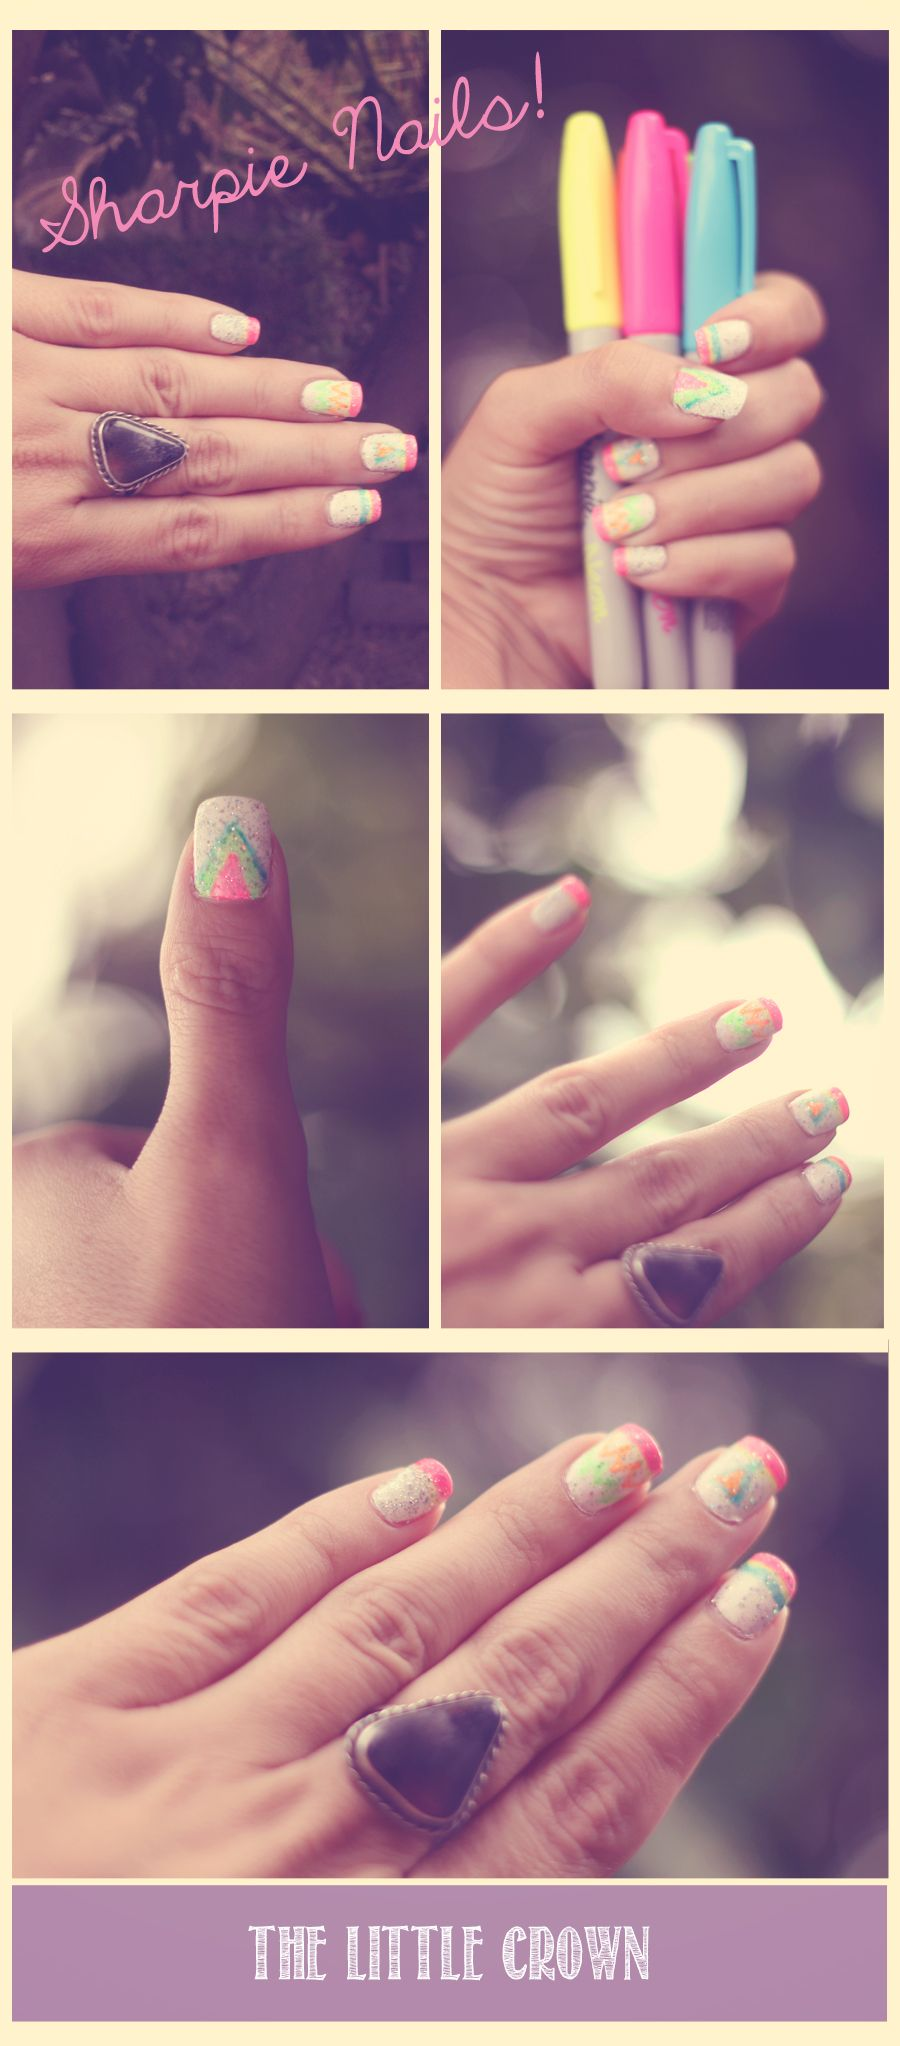 Easy Nail Design Sharpie Nails Sharpie Nails Simple Nail Designs Nail Designs